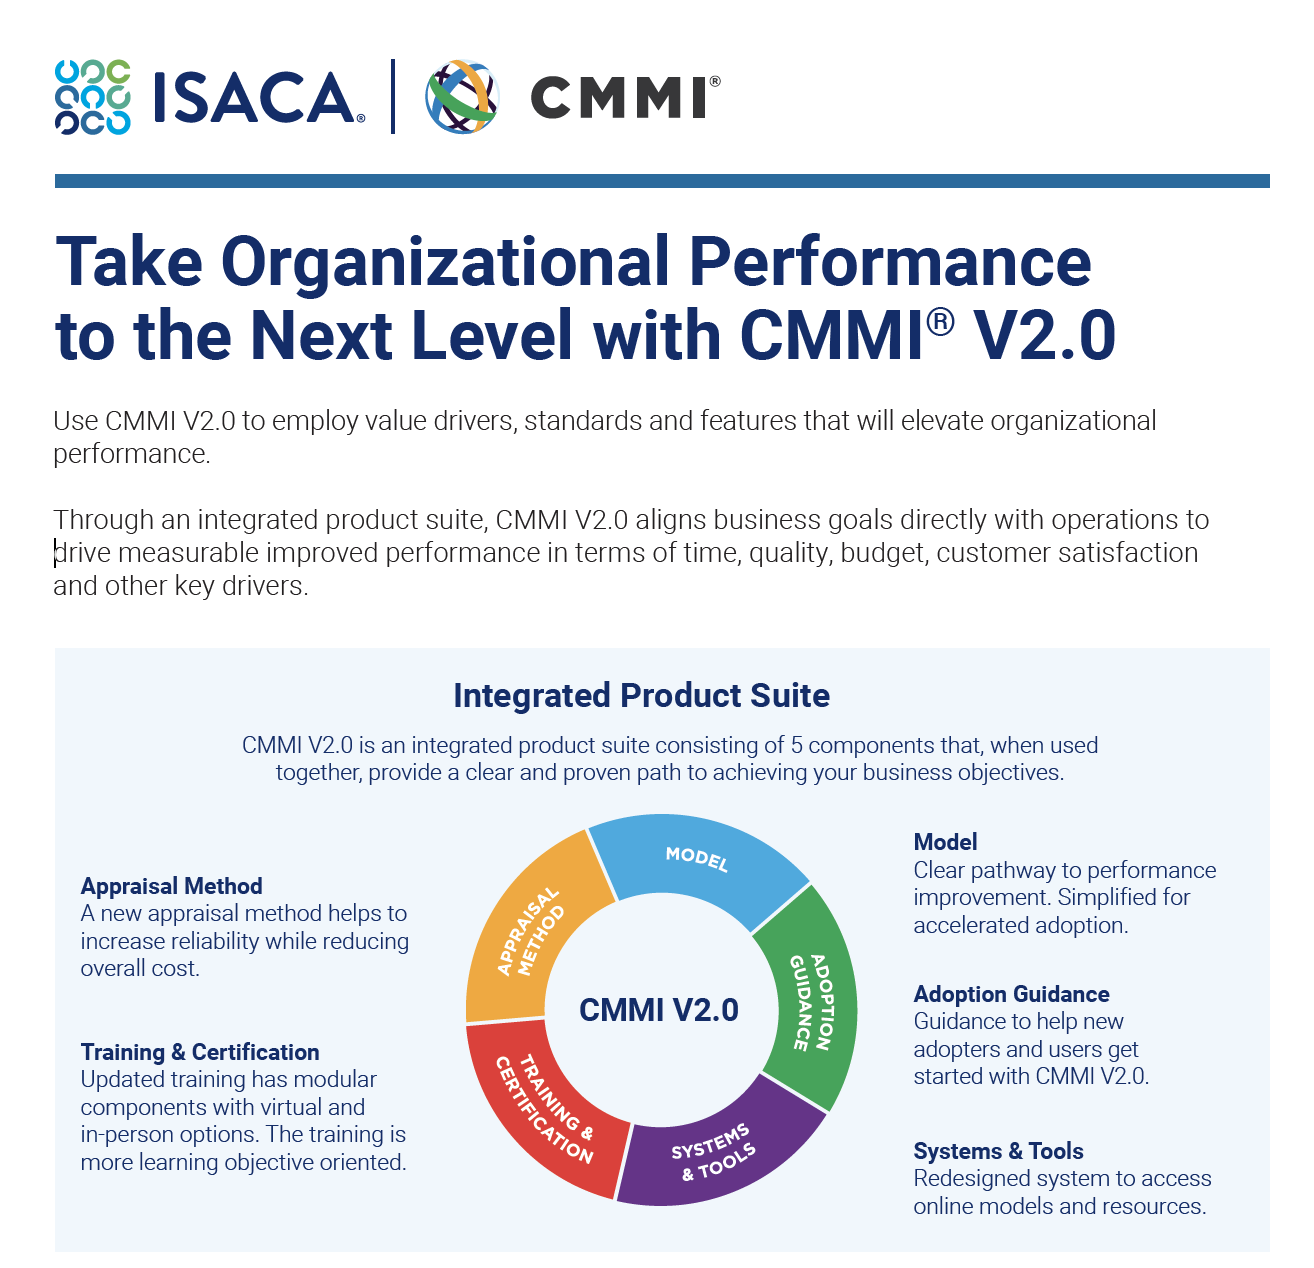 Take Organizational Performance to the Next Level with CMMI V2.0